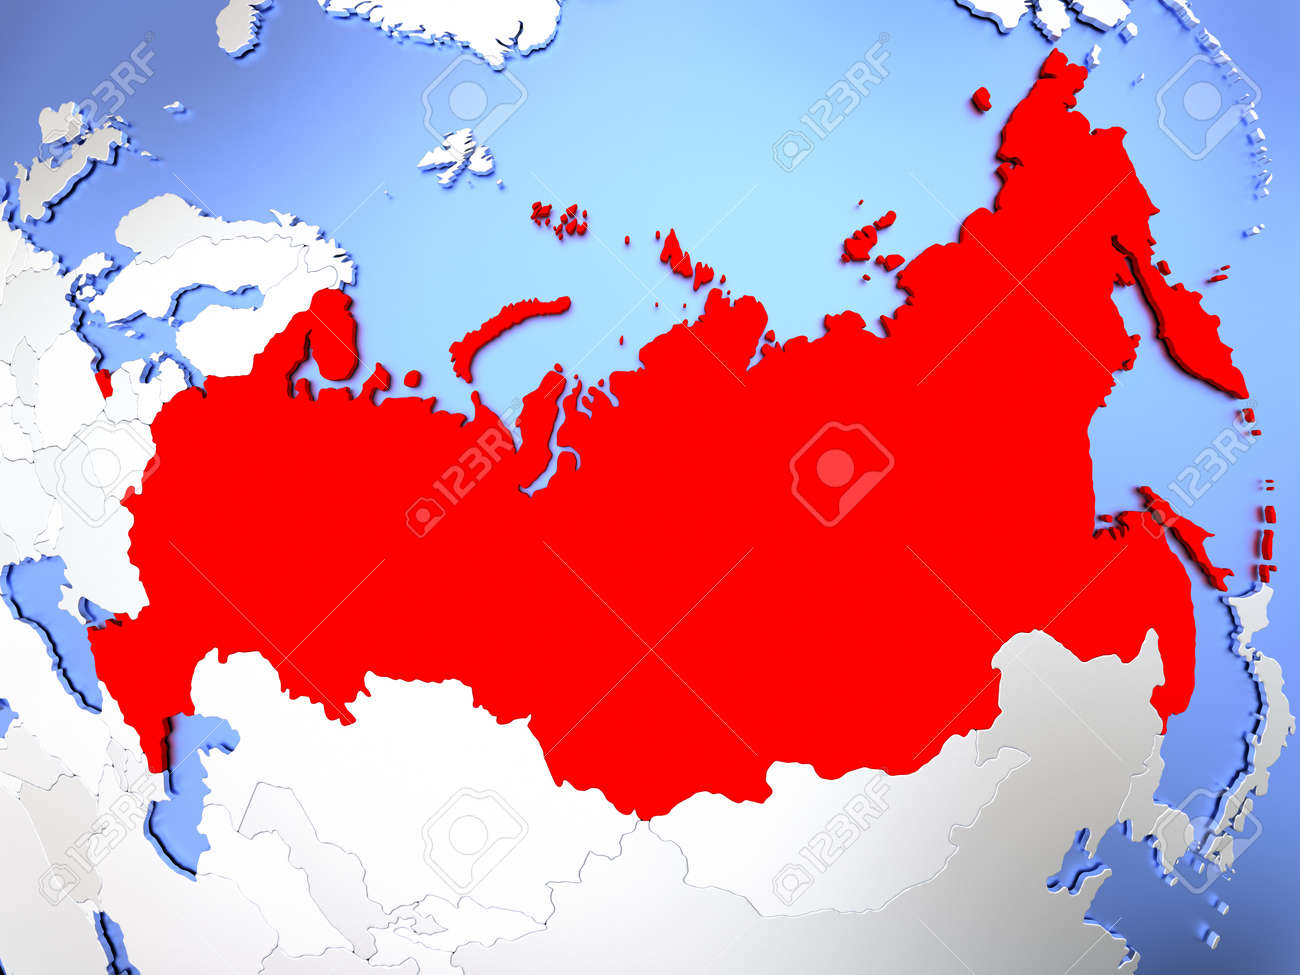 Map Of Russia Highlighted In Red On Simple Shiny Metallic Map ...